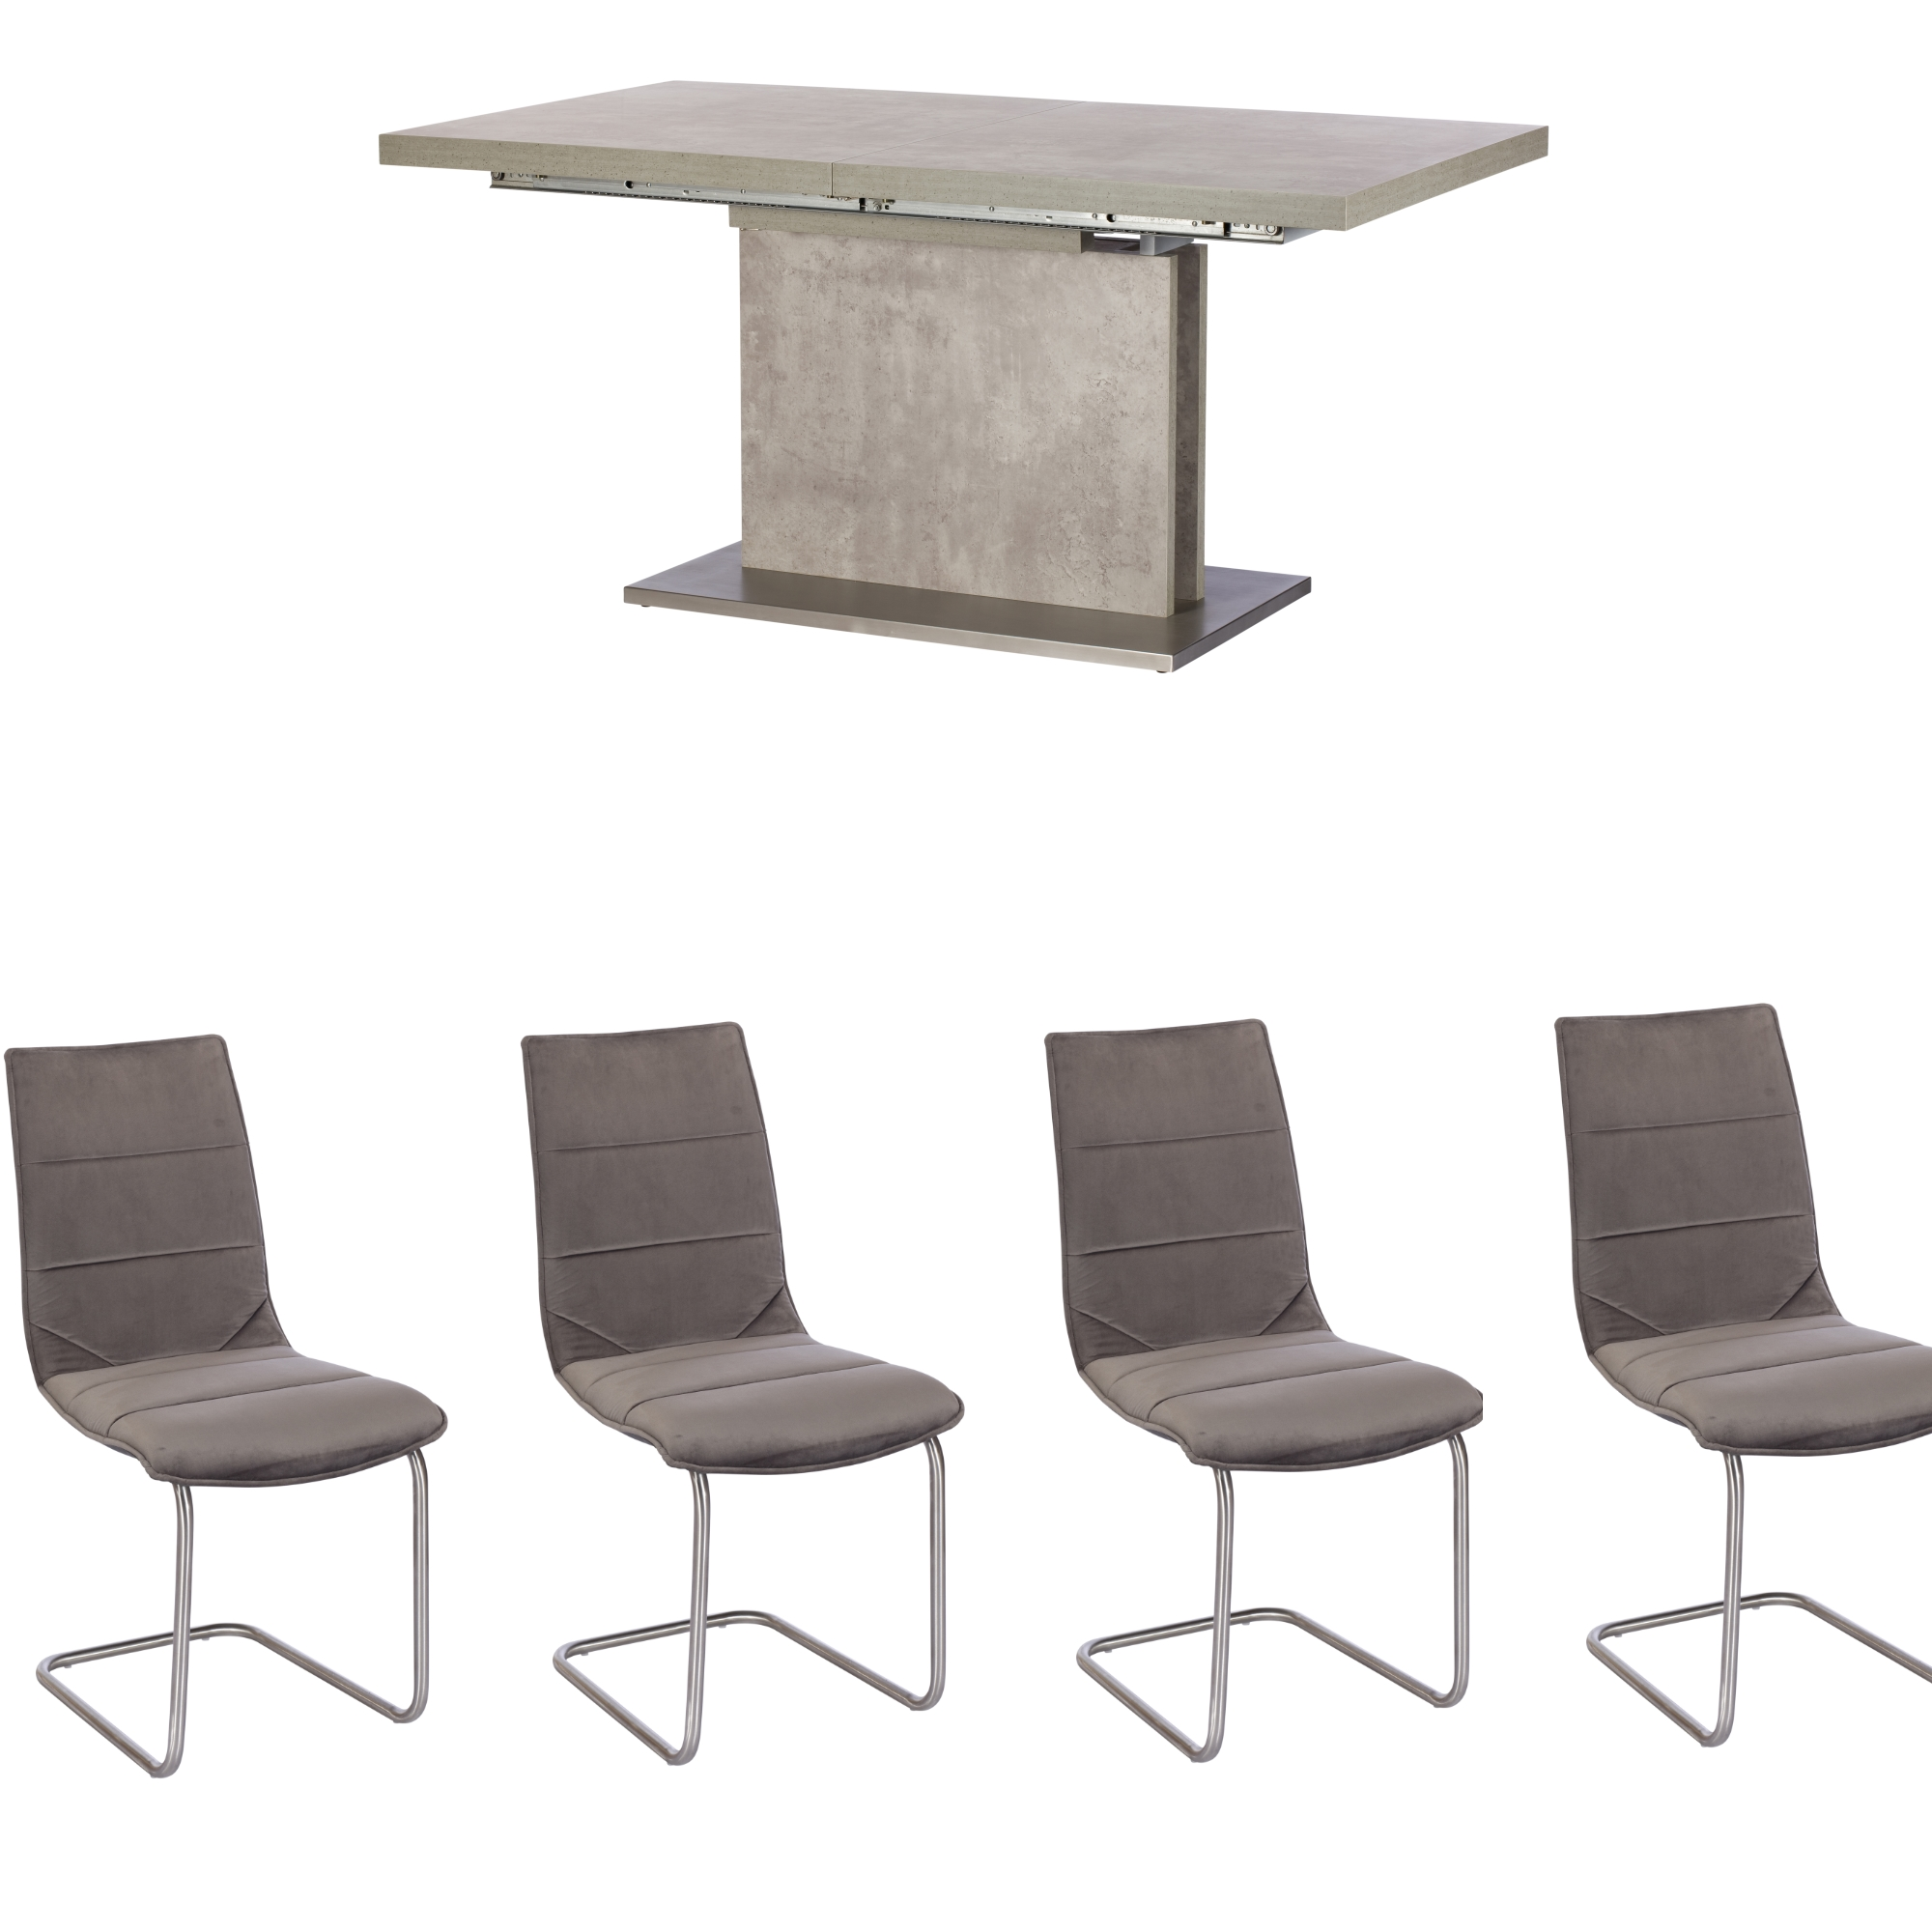 Pella Concrete Effect Extending Dining Table & 4 Chairs